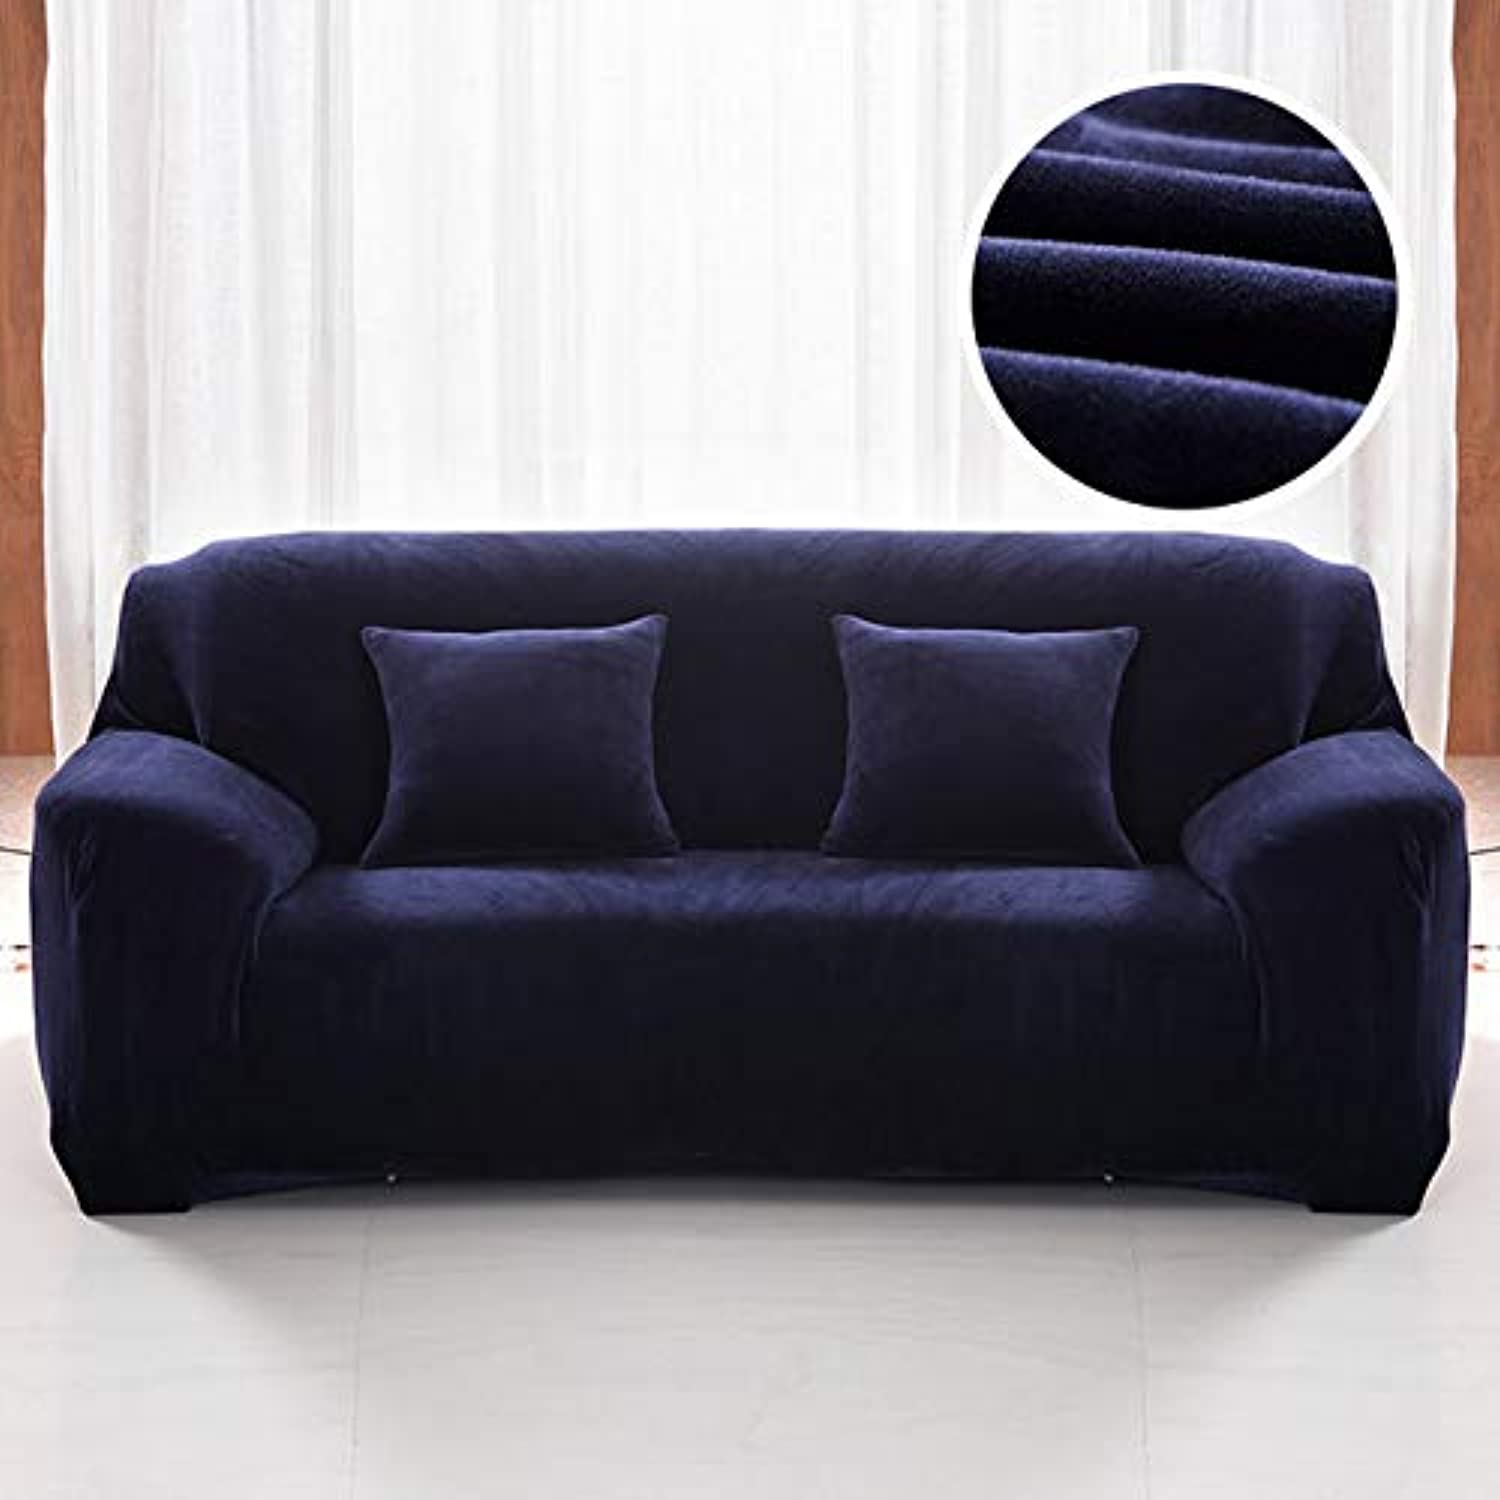 Farmerly Plush fabirc Sofa Cover 1 2 3 4 Seater Thick Slipcover Couch sofacovers Stretch Elastic Cheap Sofa Covers Towel wrap Covering   Navy, 1 seat 90-140cm